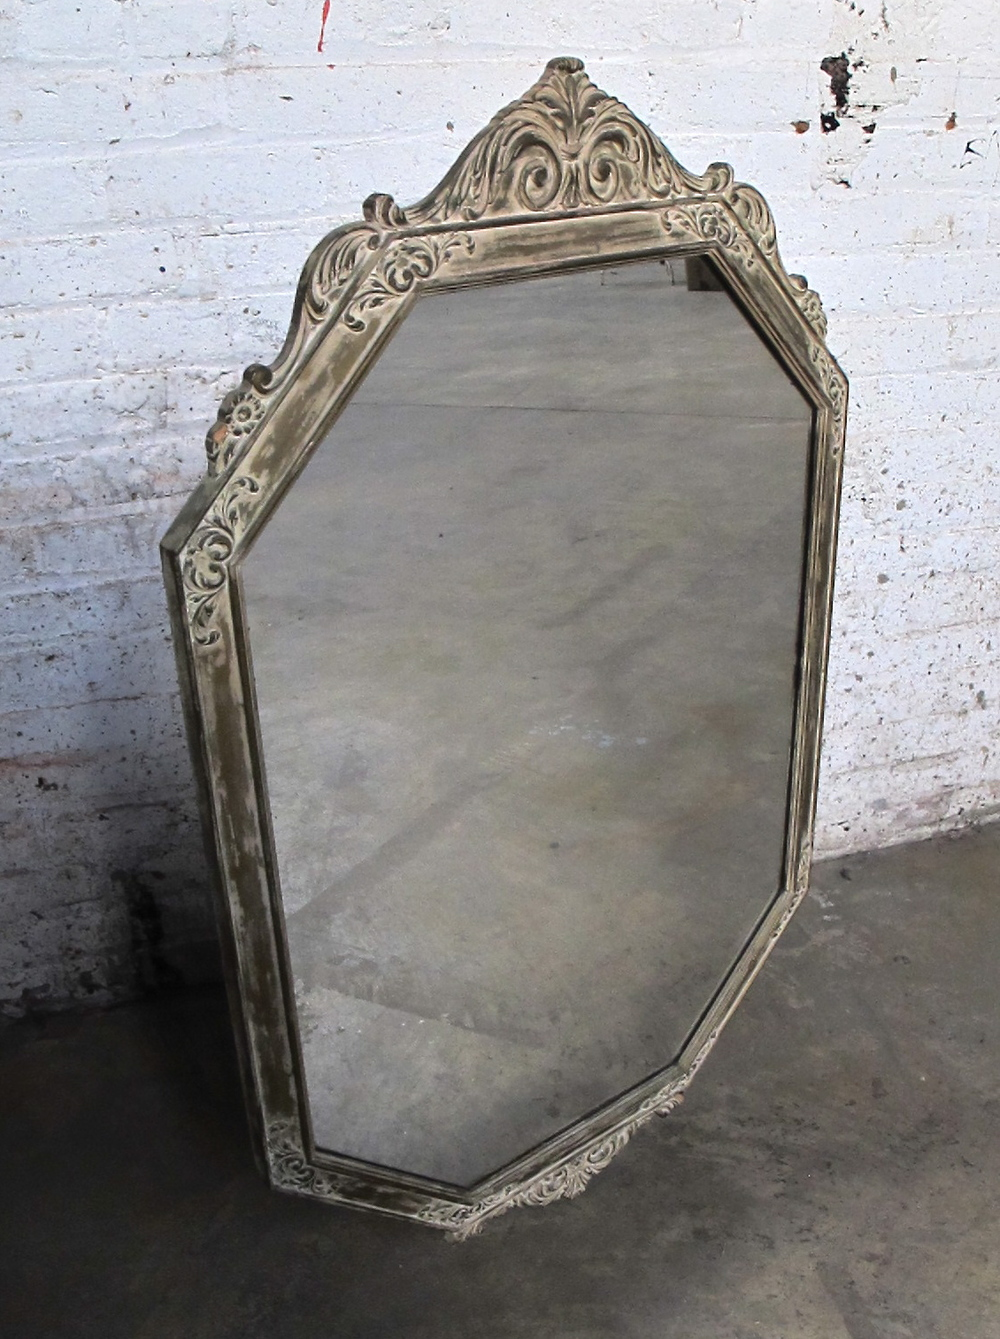 Ornate Ovally Octagon Mirror $100